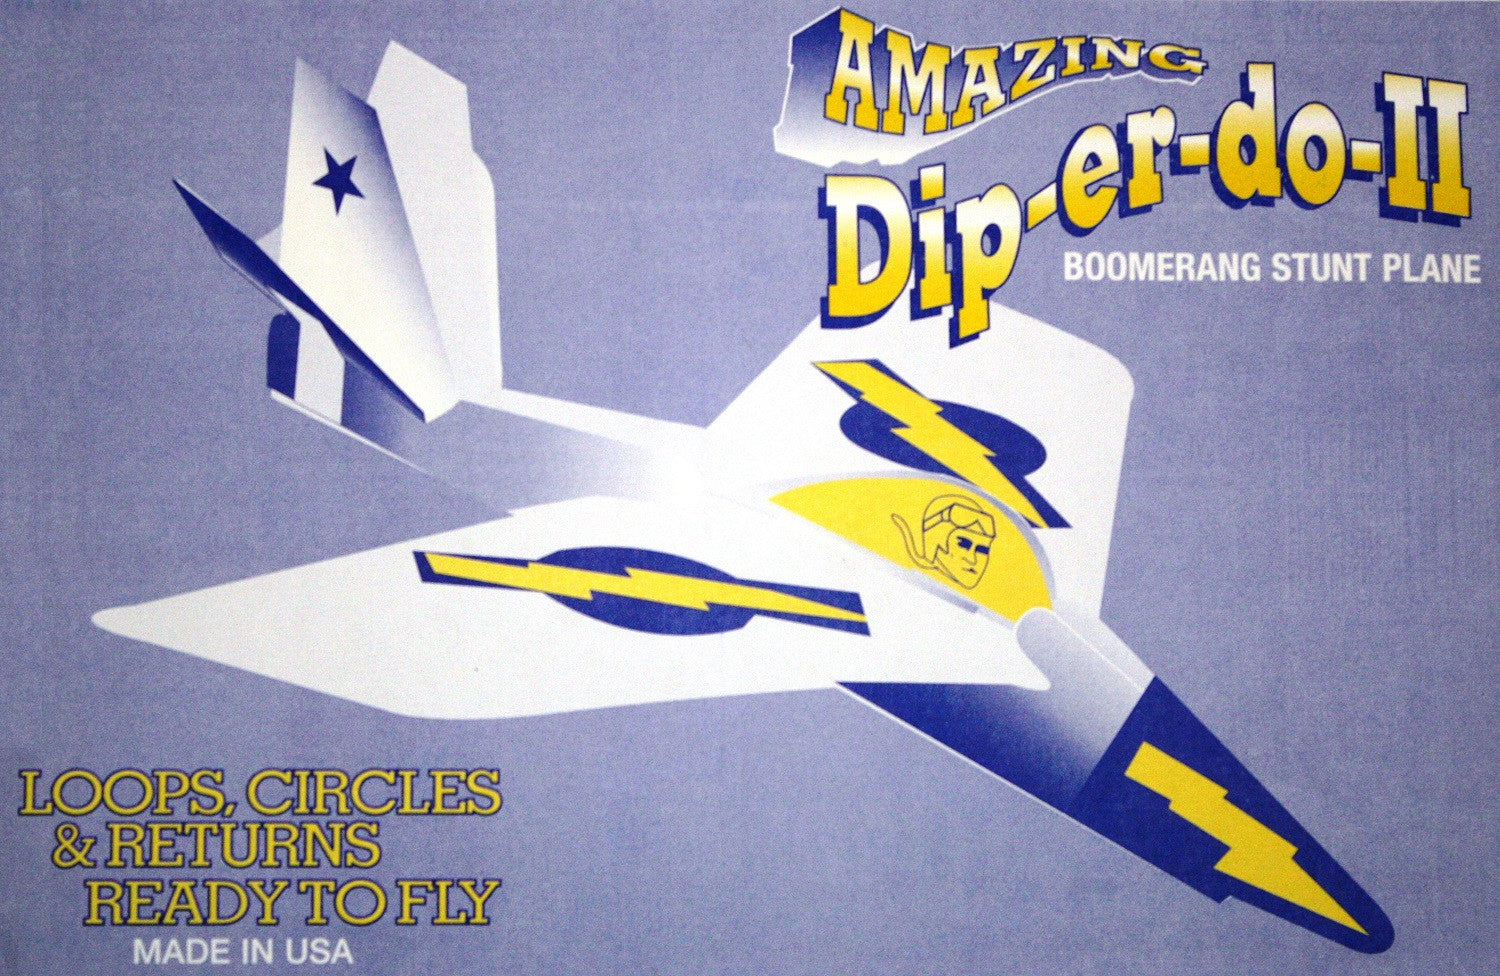 Dip-er-do II Boomerang Stunt Plane - Single Airplane - Off The Wall Toys and Gifts